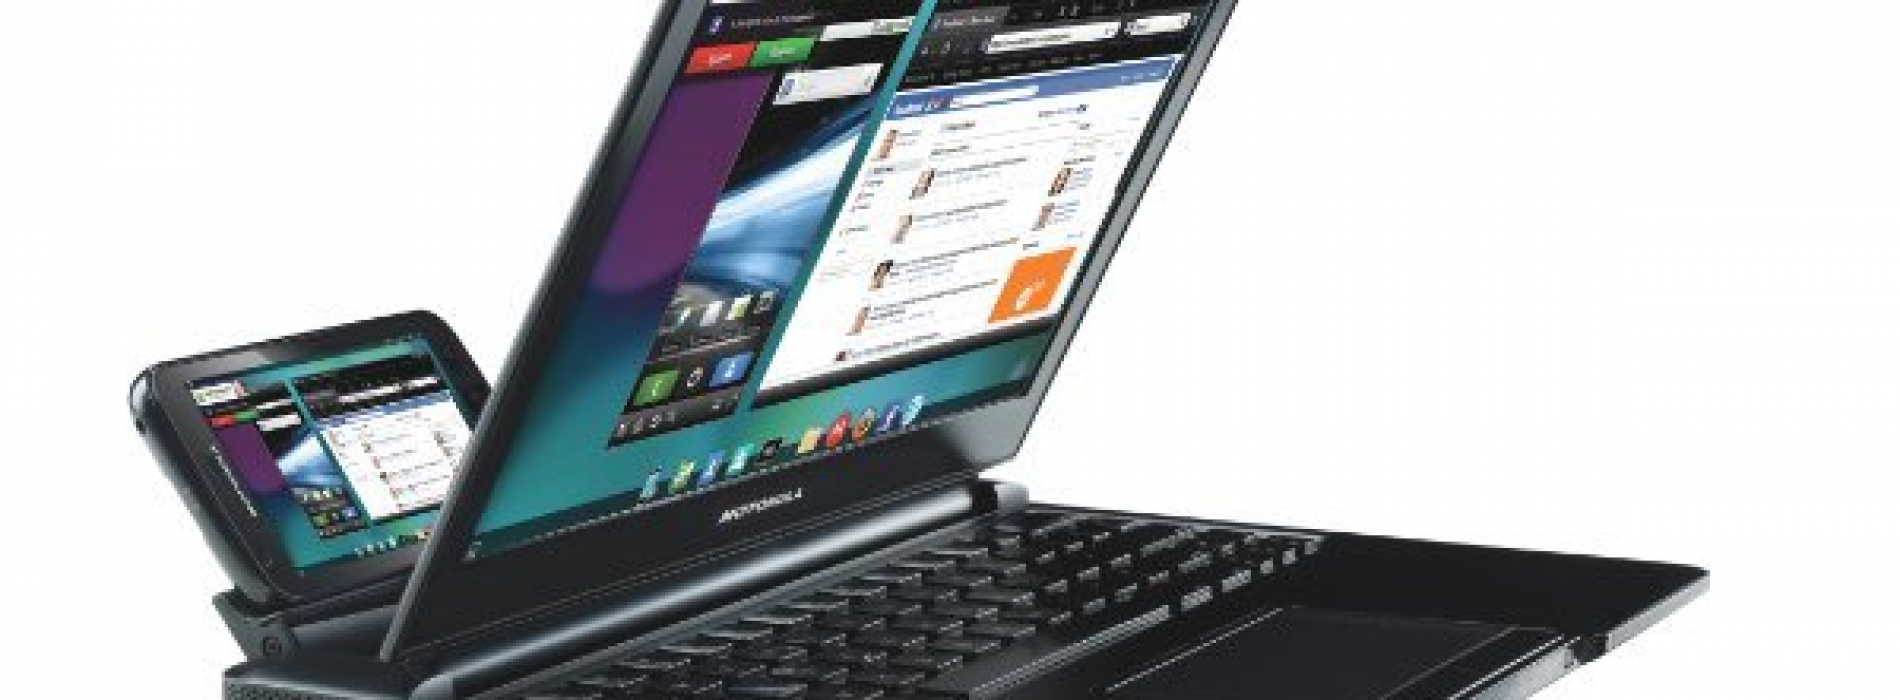 AT&T drops price of Atrix 4G Lapdock to $50 [Update: now $100]